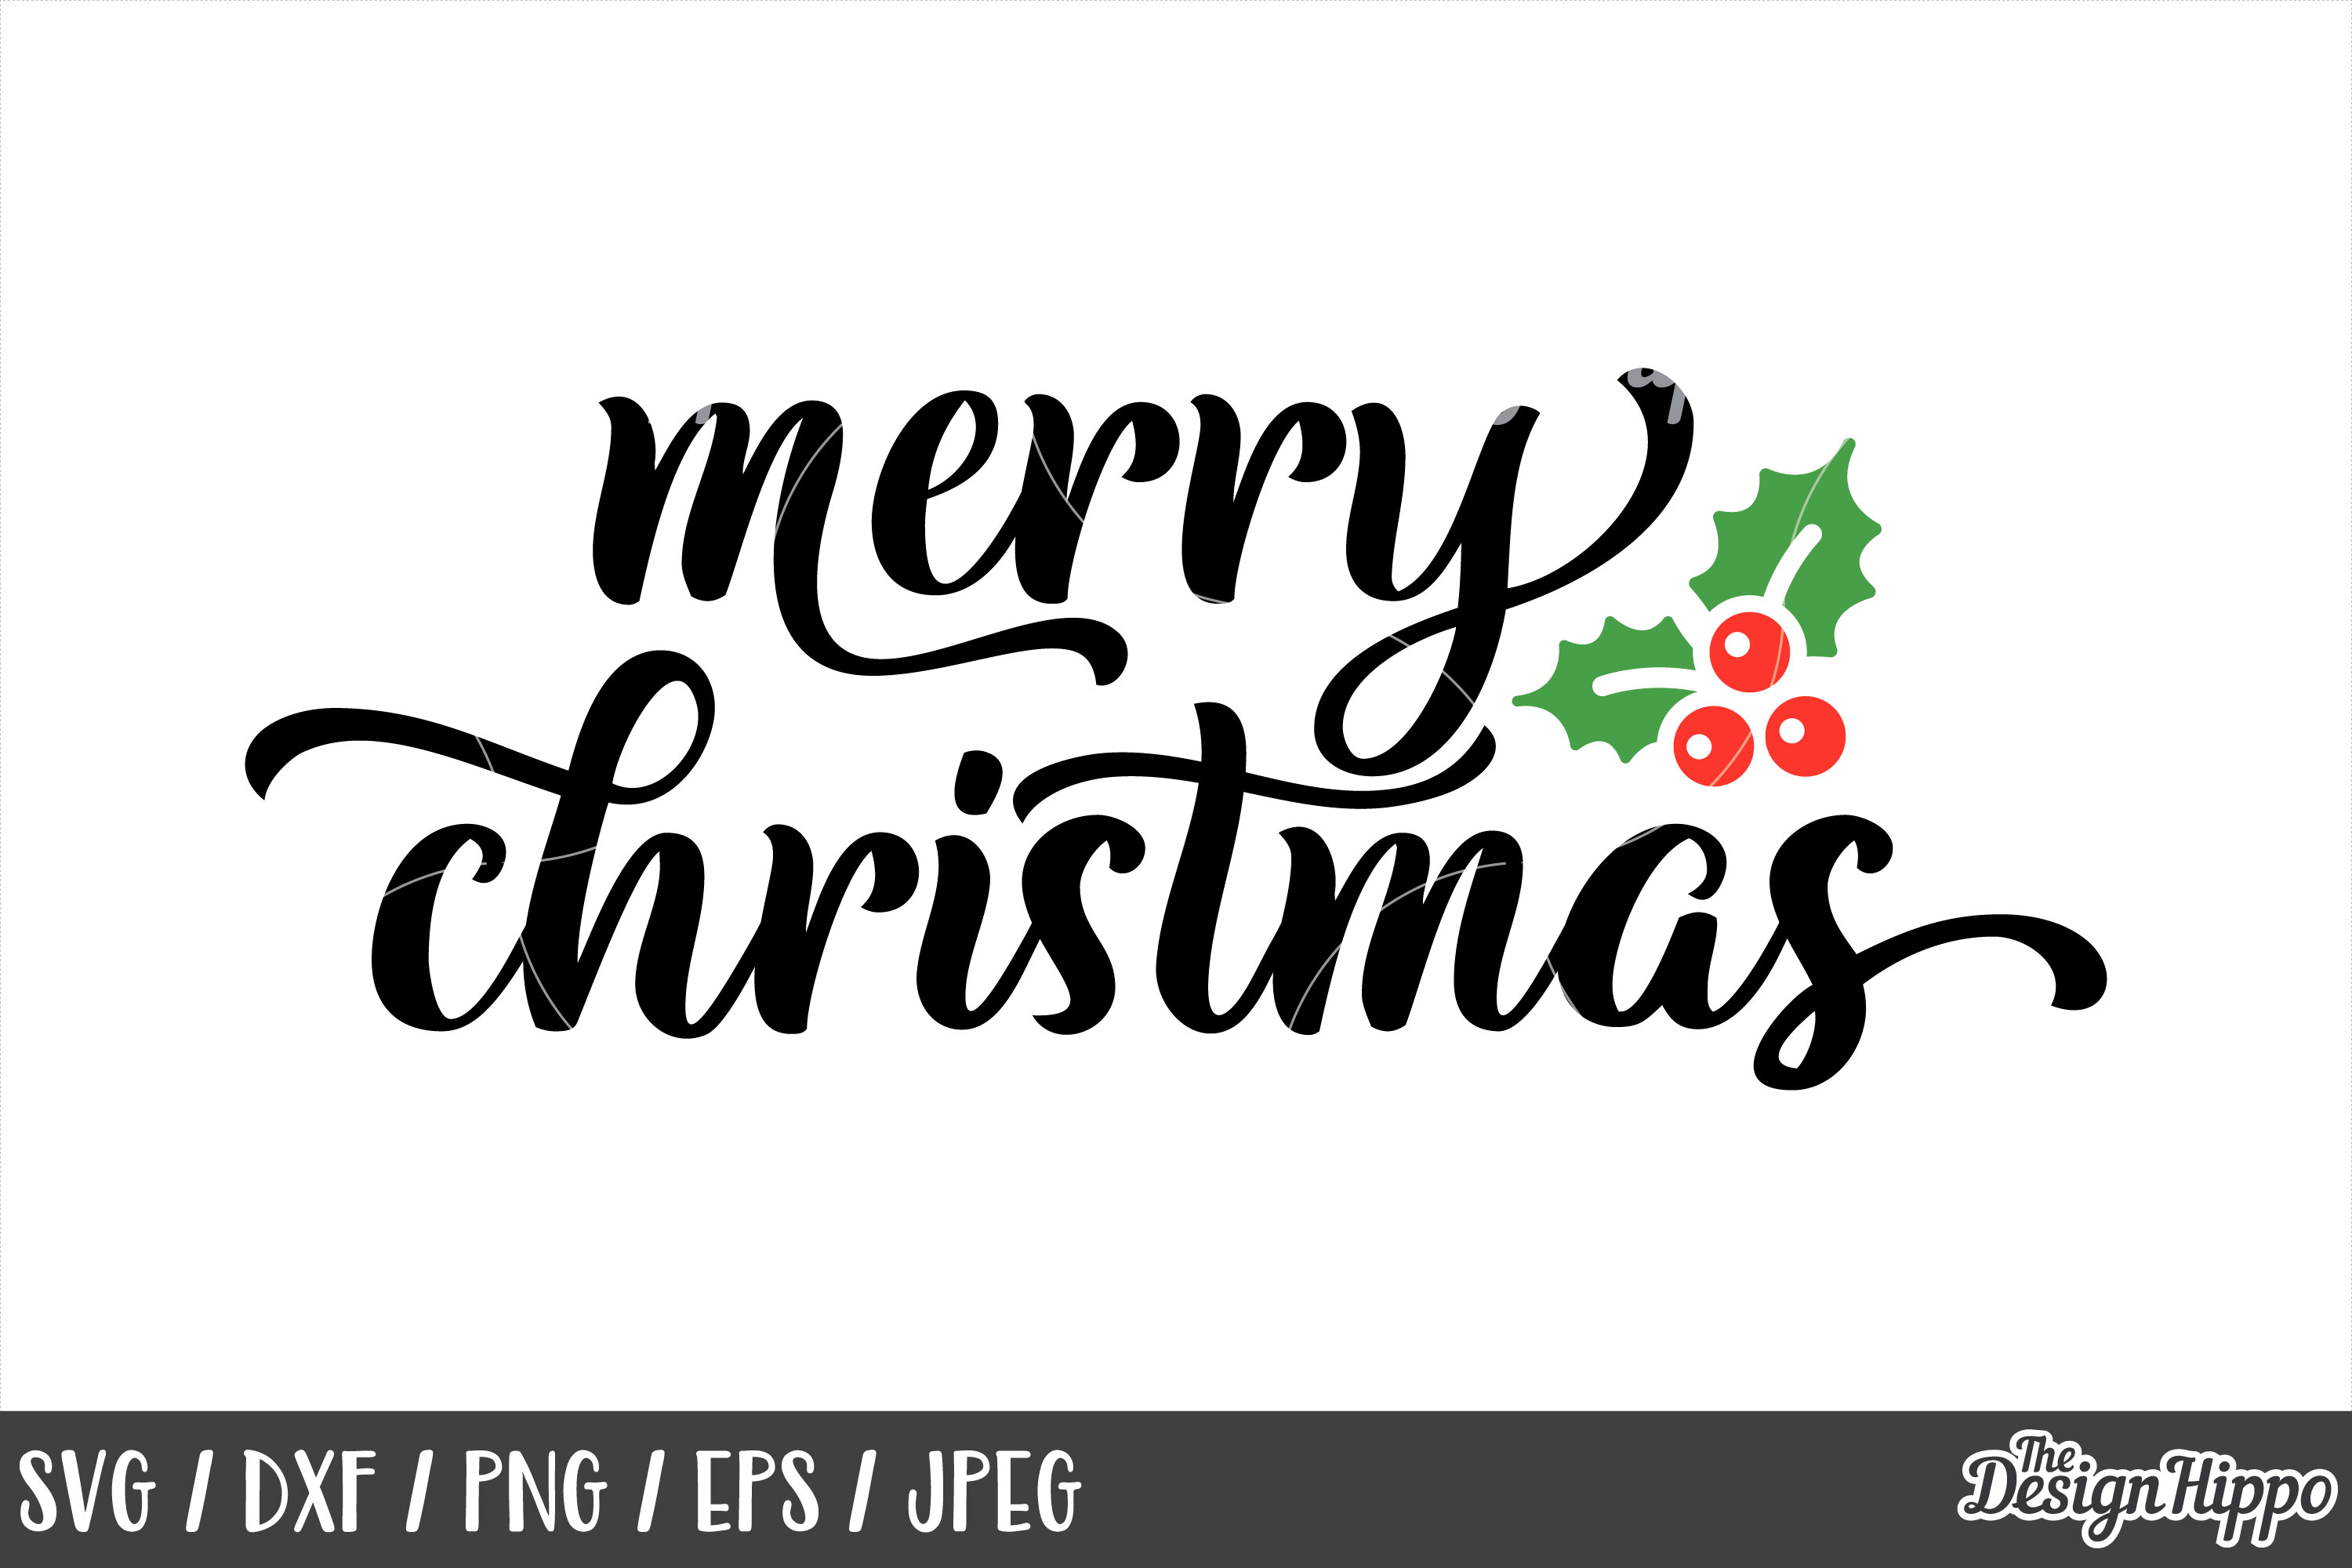 Merry Christmas SVG Bundle, Christmas SVG, PNG, DXF Cut File example image 6